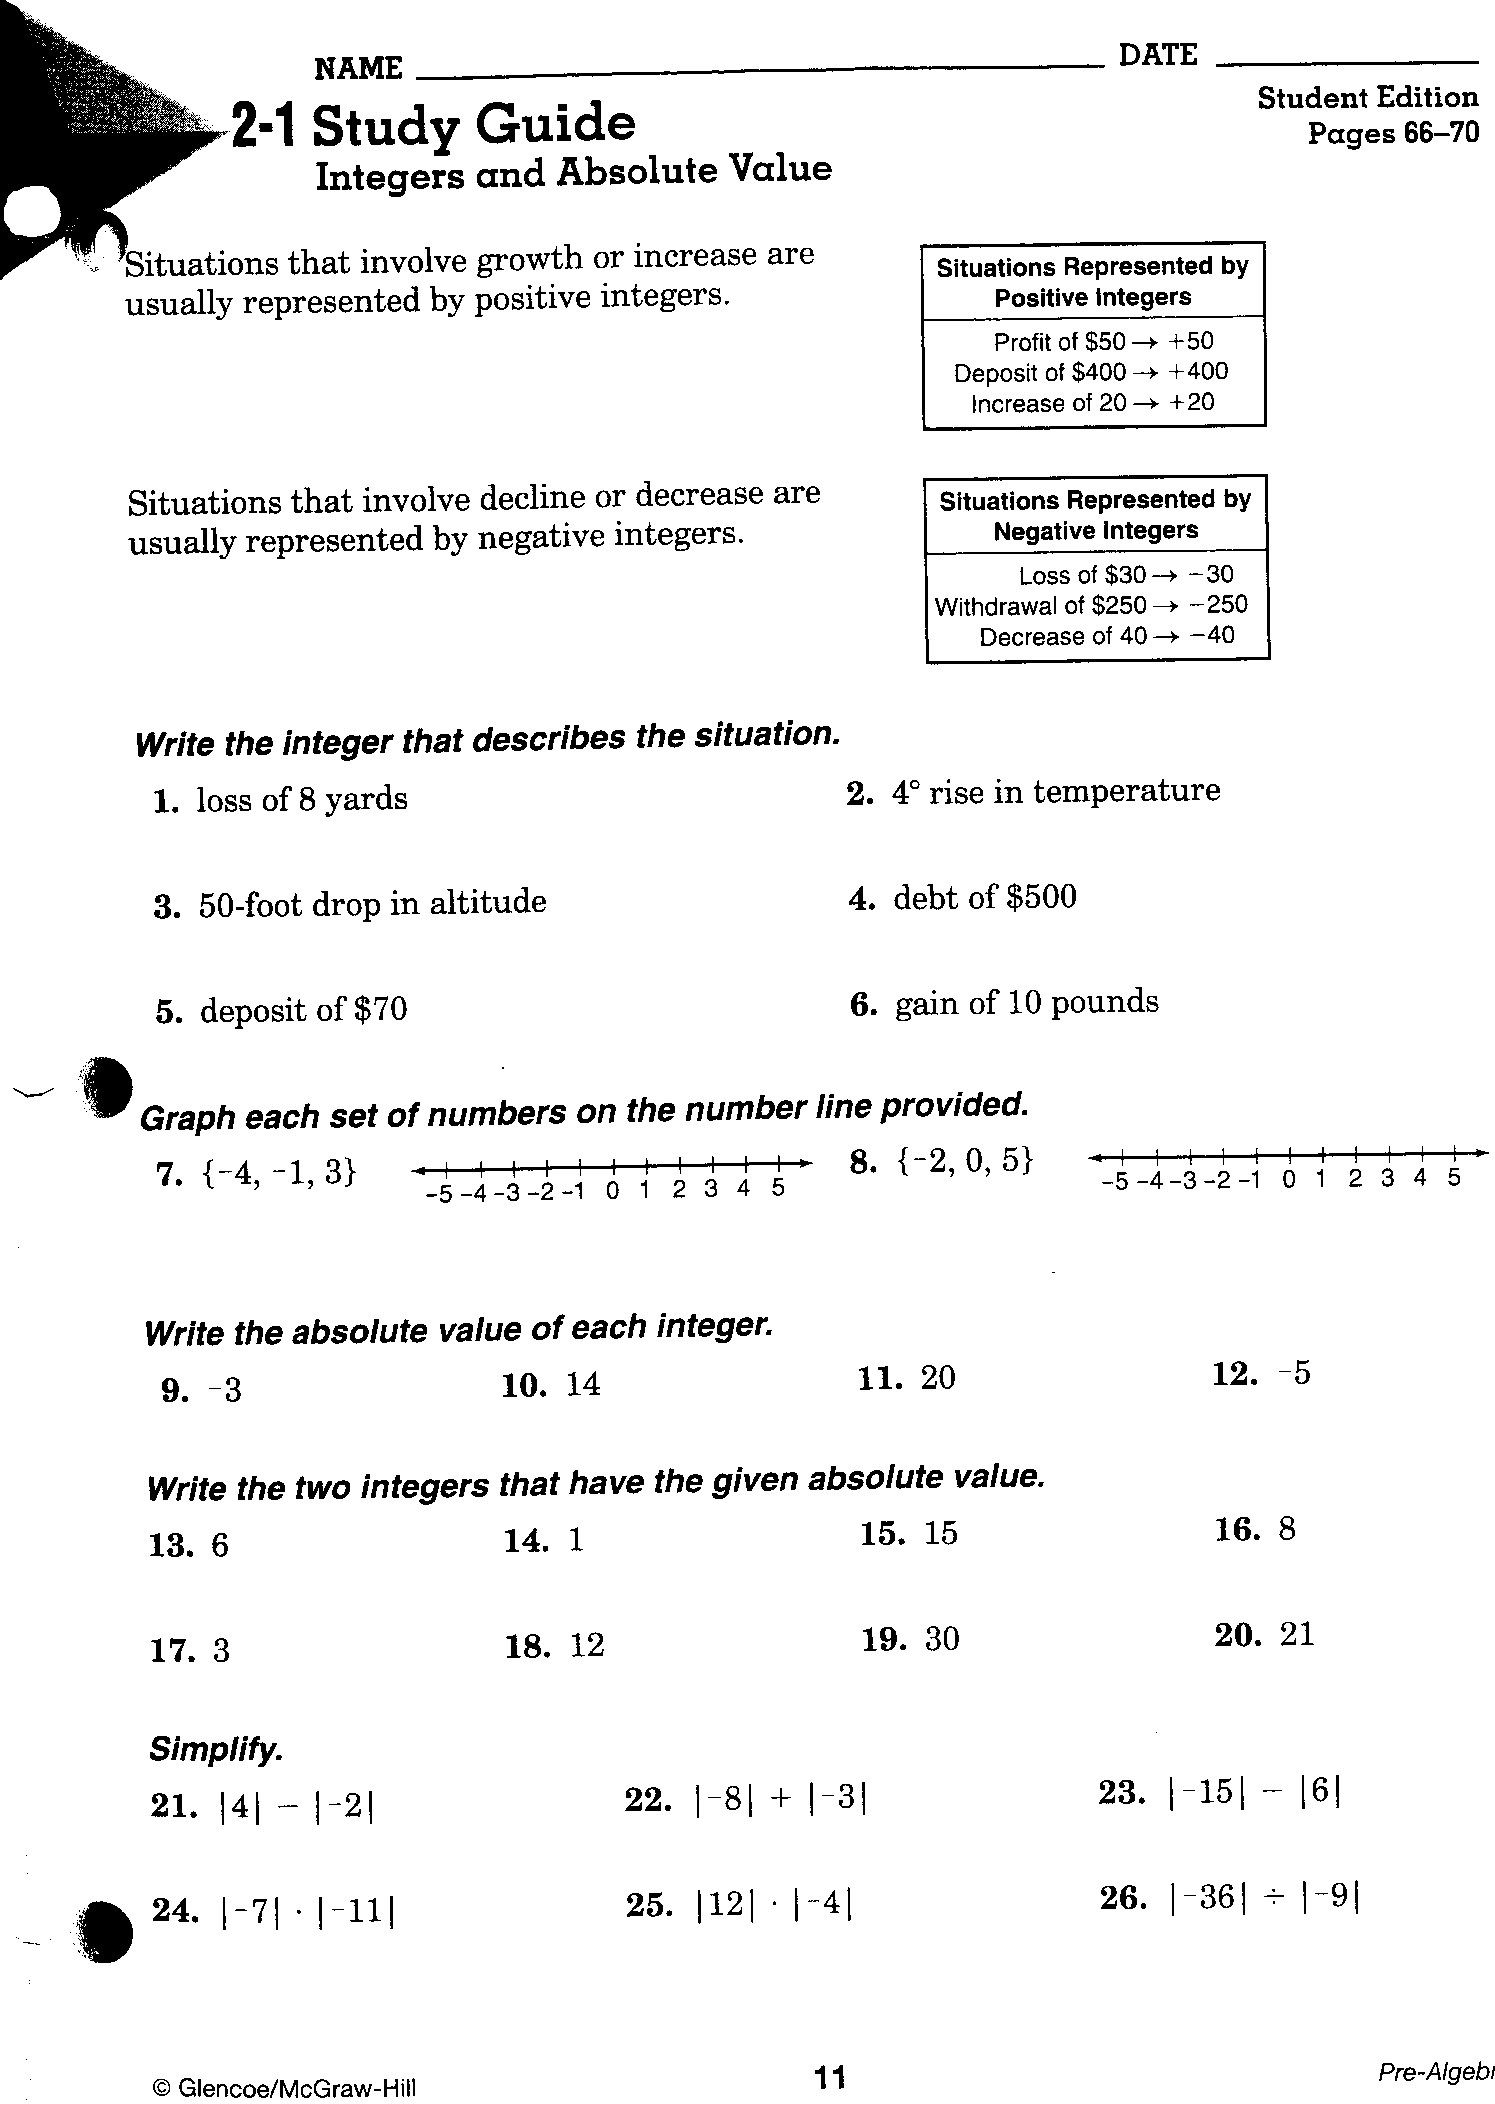 Math Worksheets On Integers For 7th Grade Free